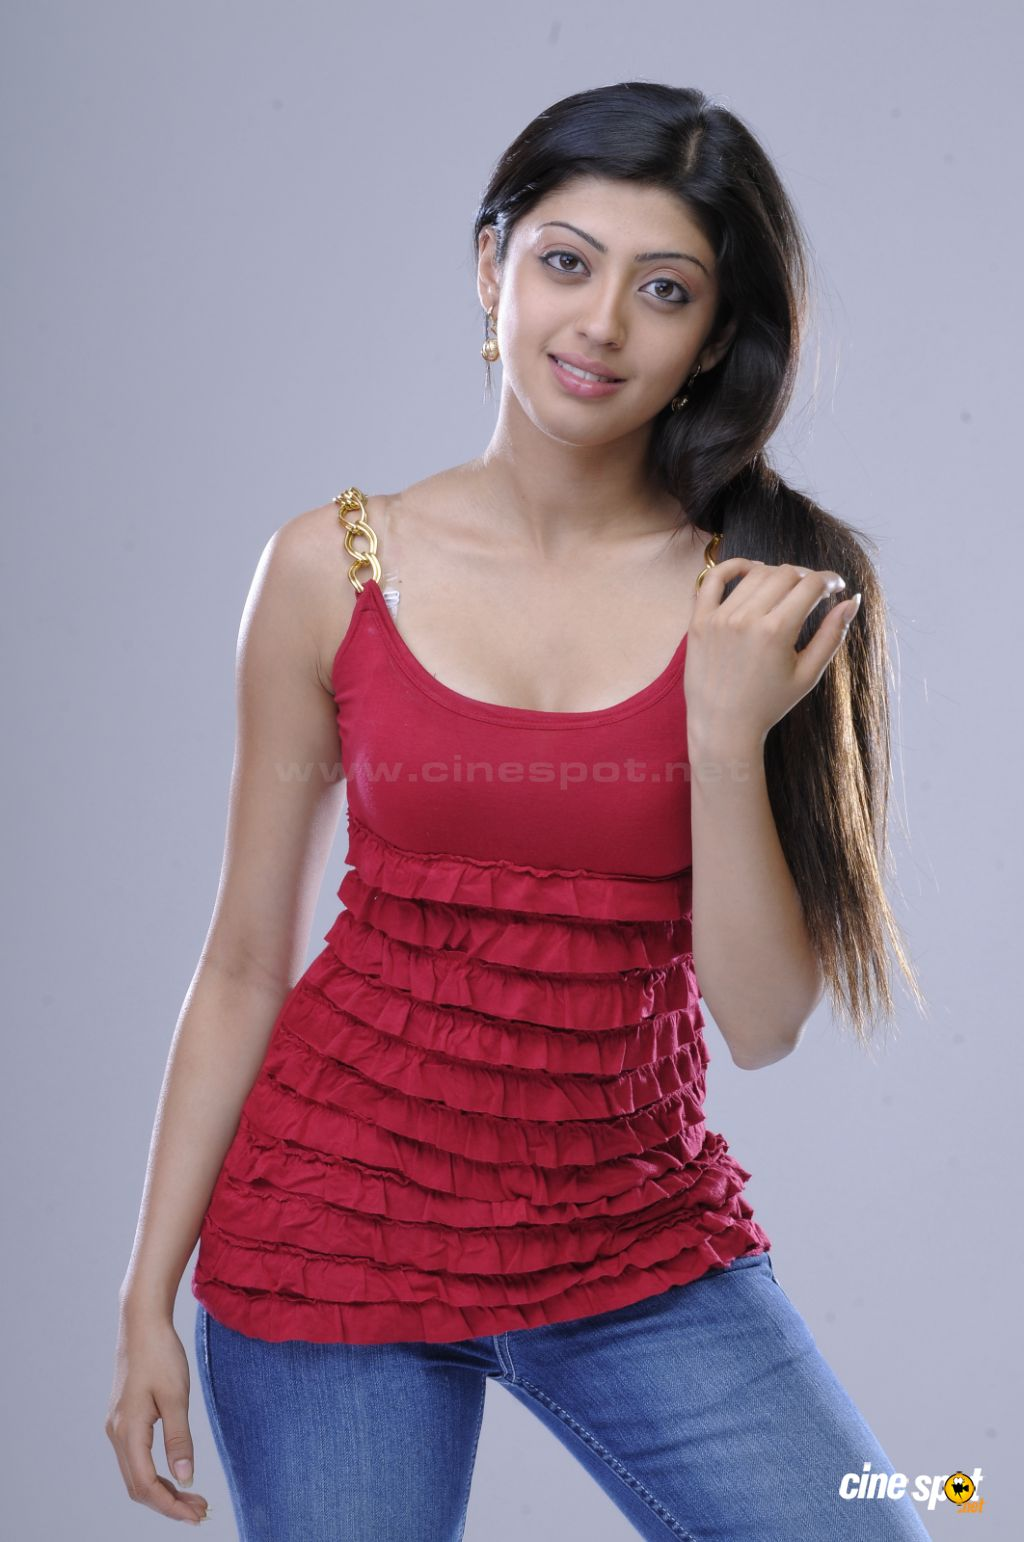 Sexy Photo Pranitha New Telugu Actress Unseen Spicy Hot New Sexy